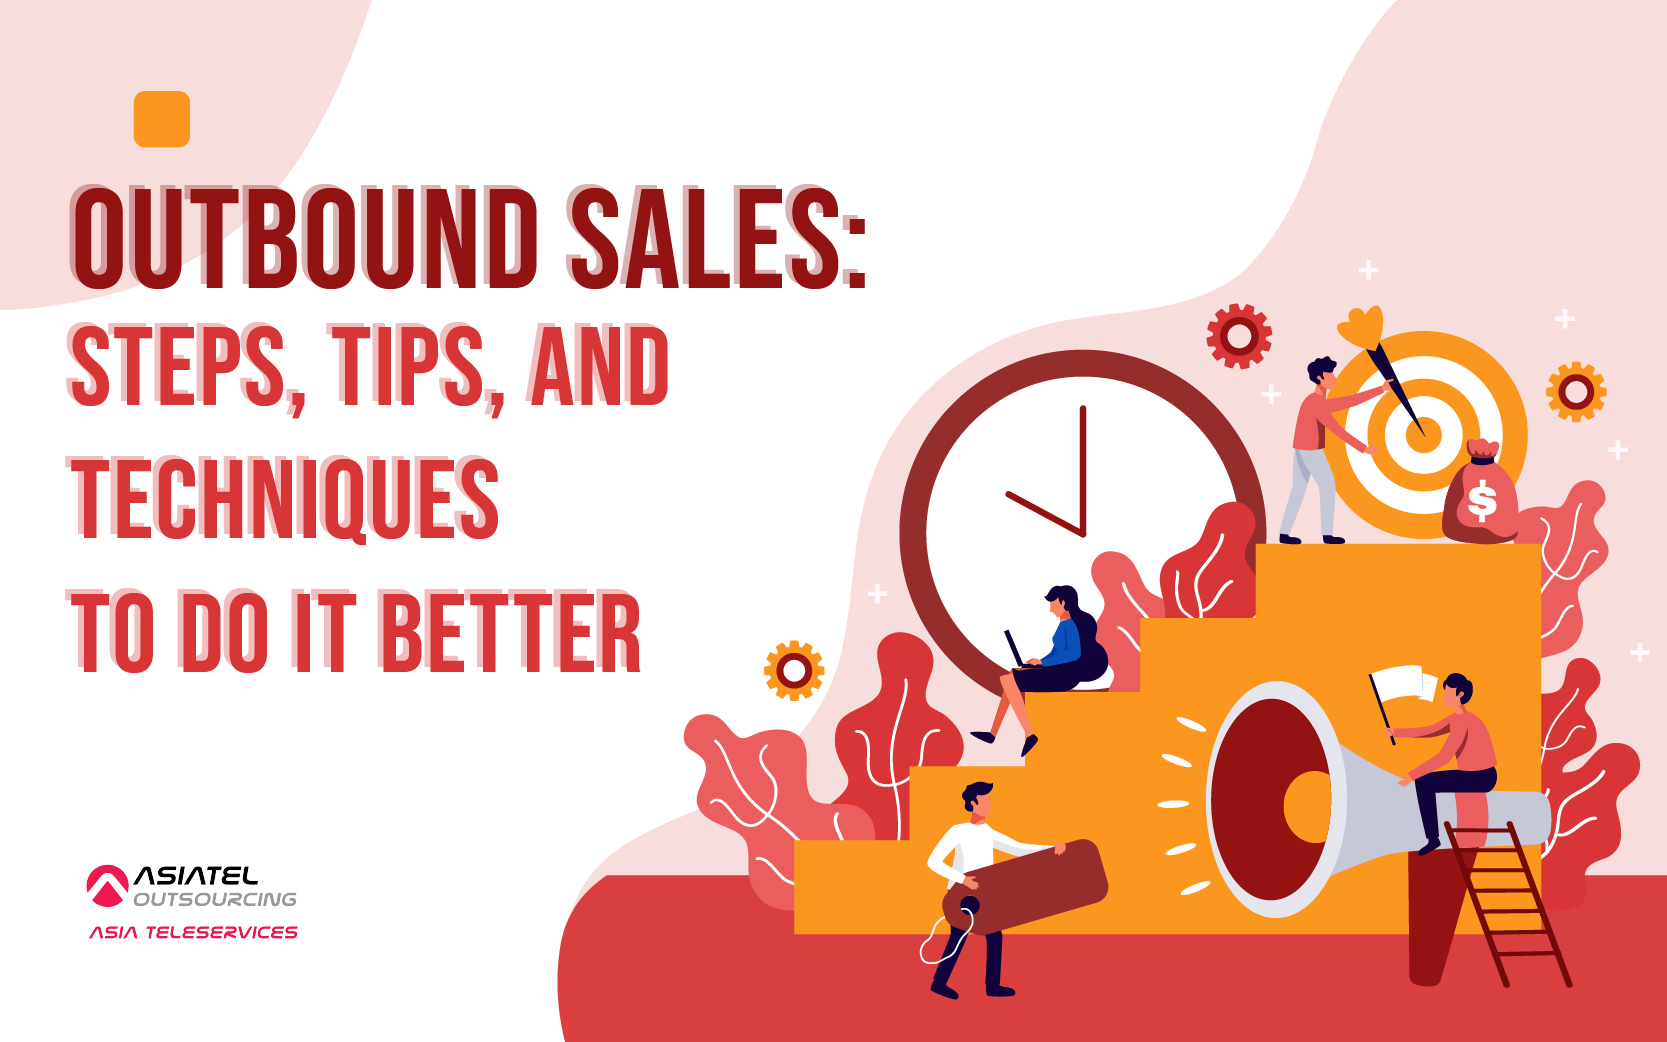 Outbound Sales: Steps, Tips, and Techniques to do it Better